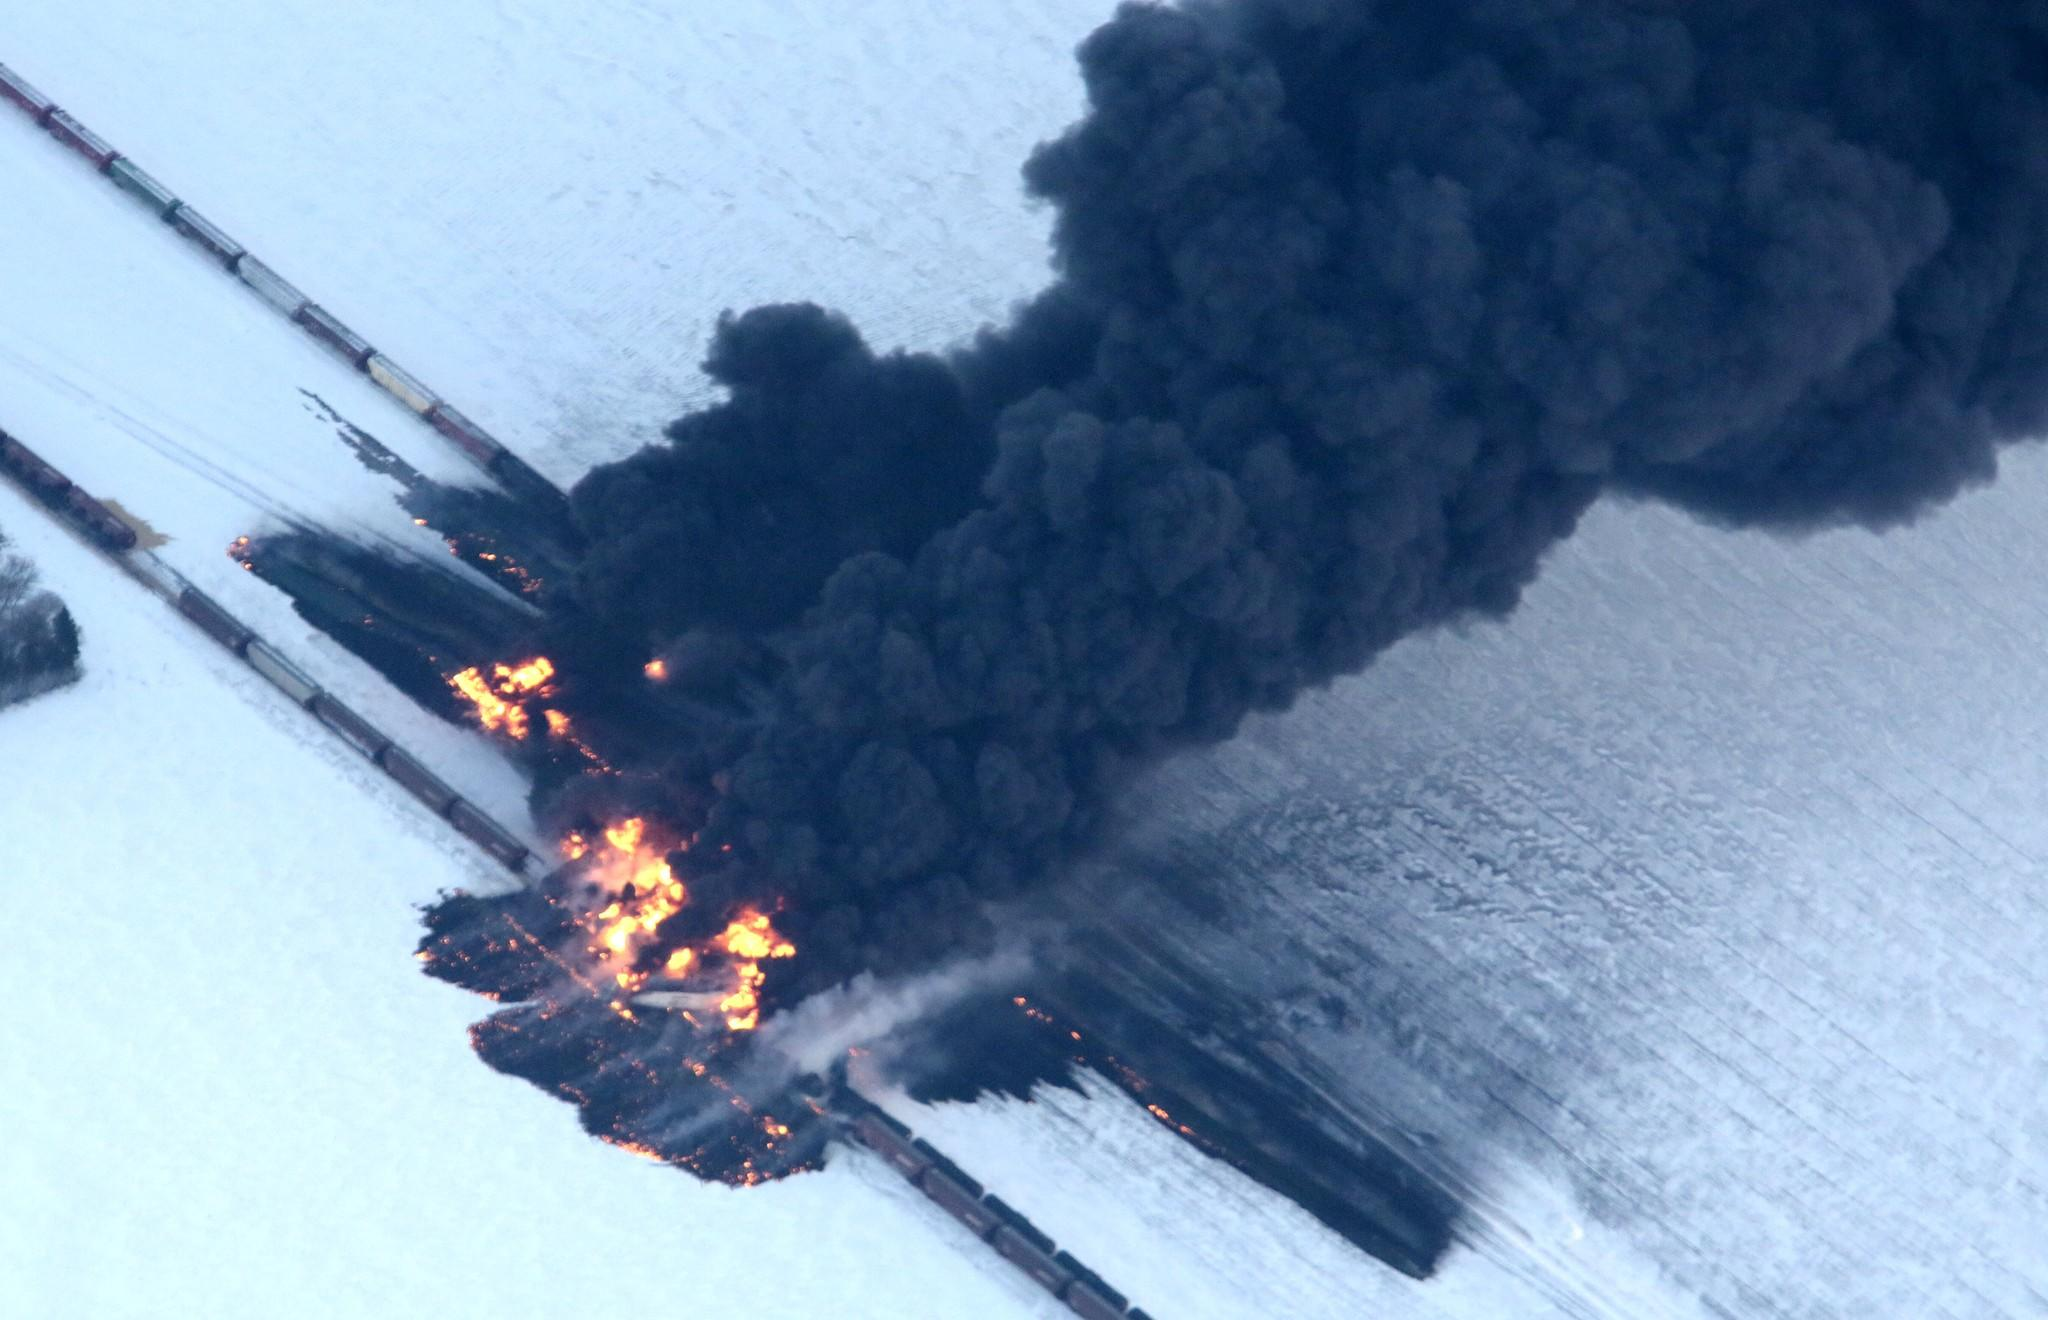 A fire from a train derailment burns uncontrollably west of Casselton, N.D. No injuries were reported.